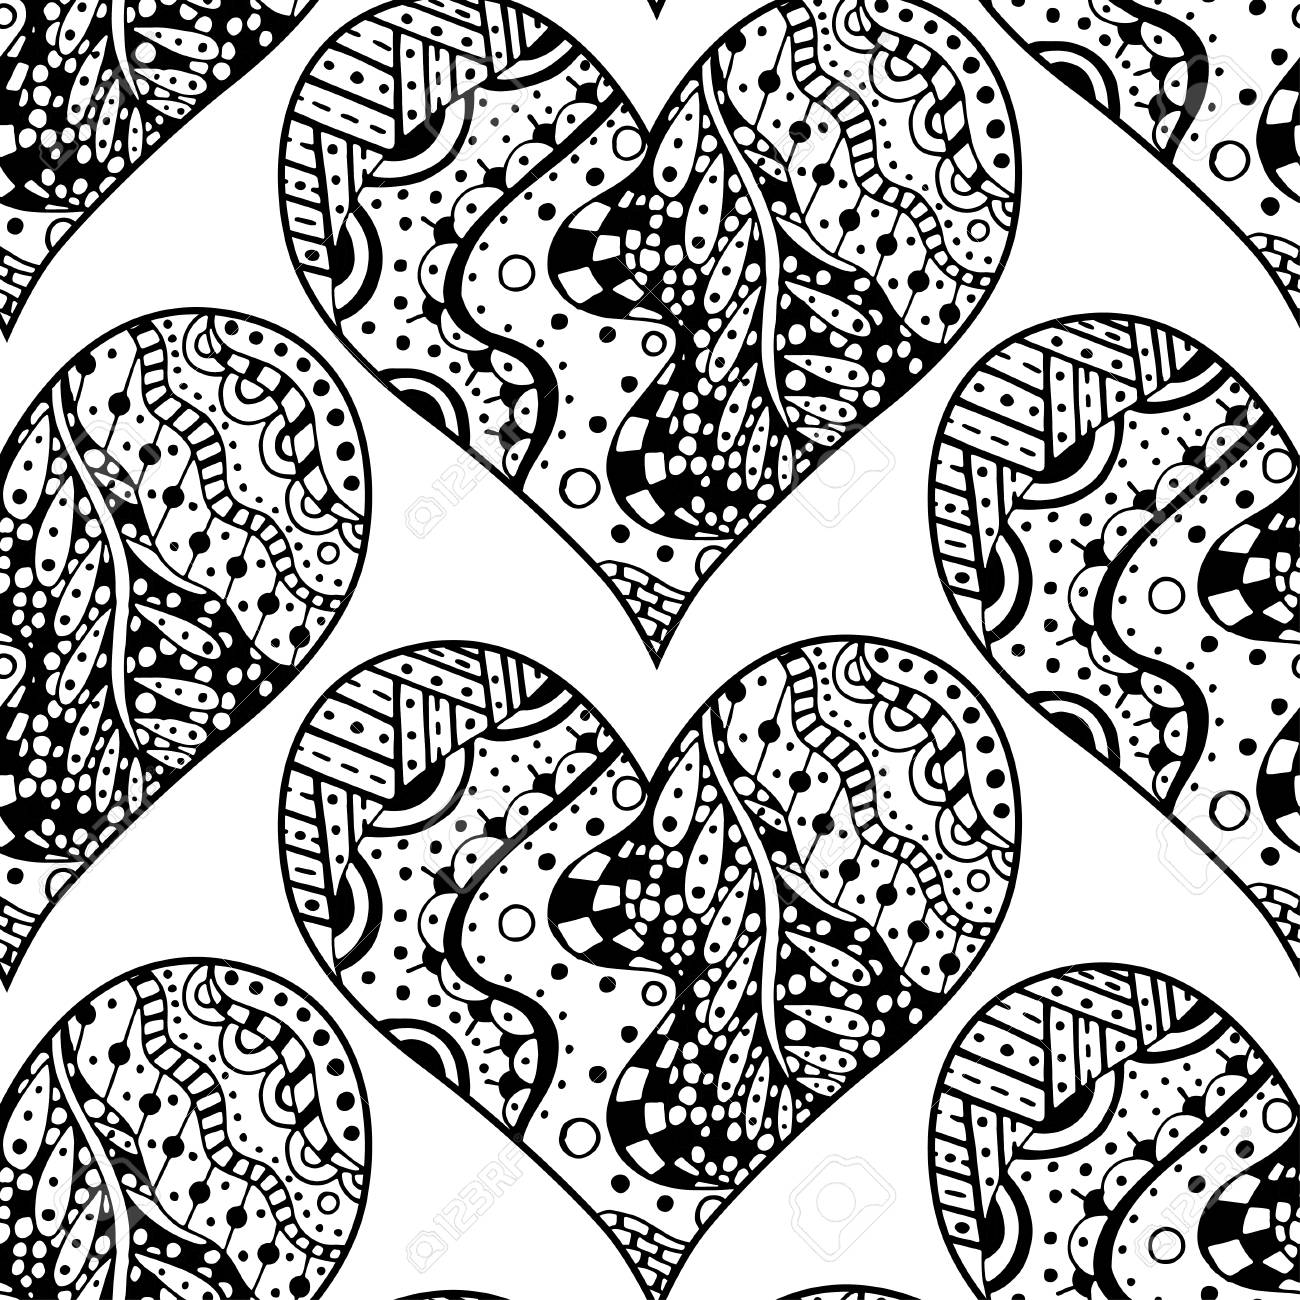 Zentangle Heart Painting For Adult Anti Stress Coloring Page ... | 1300x1300